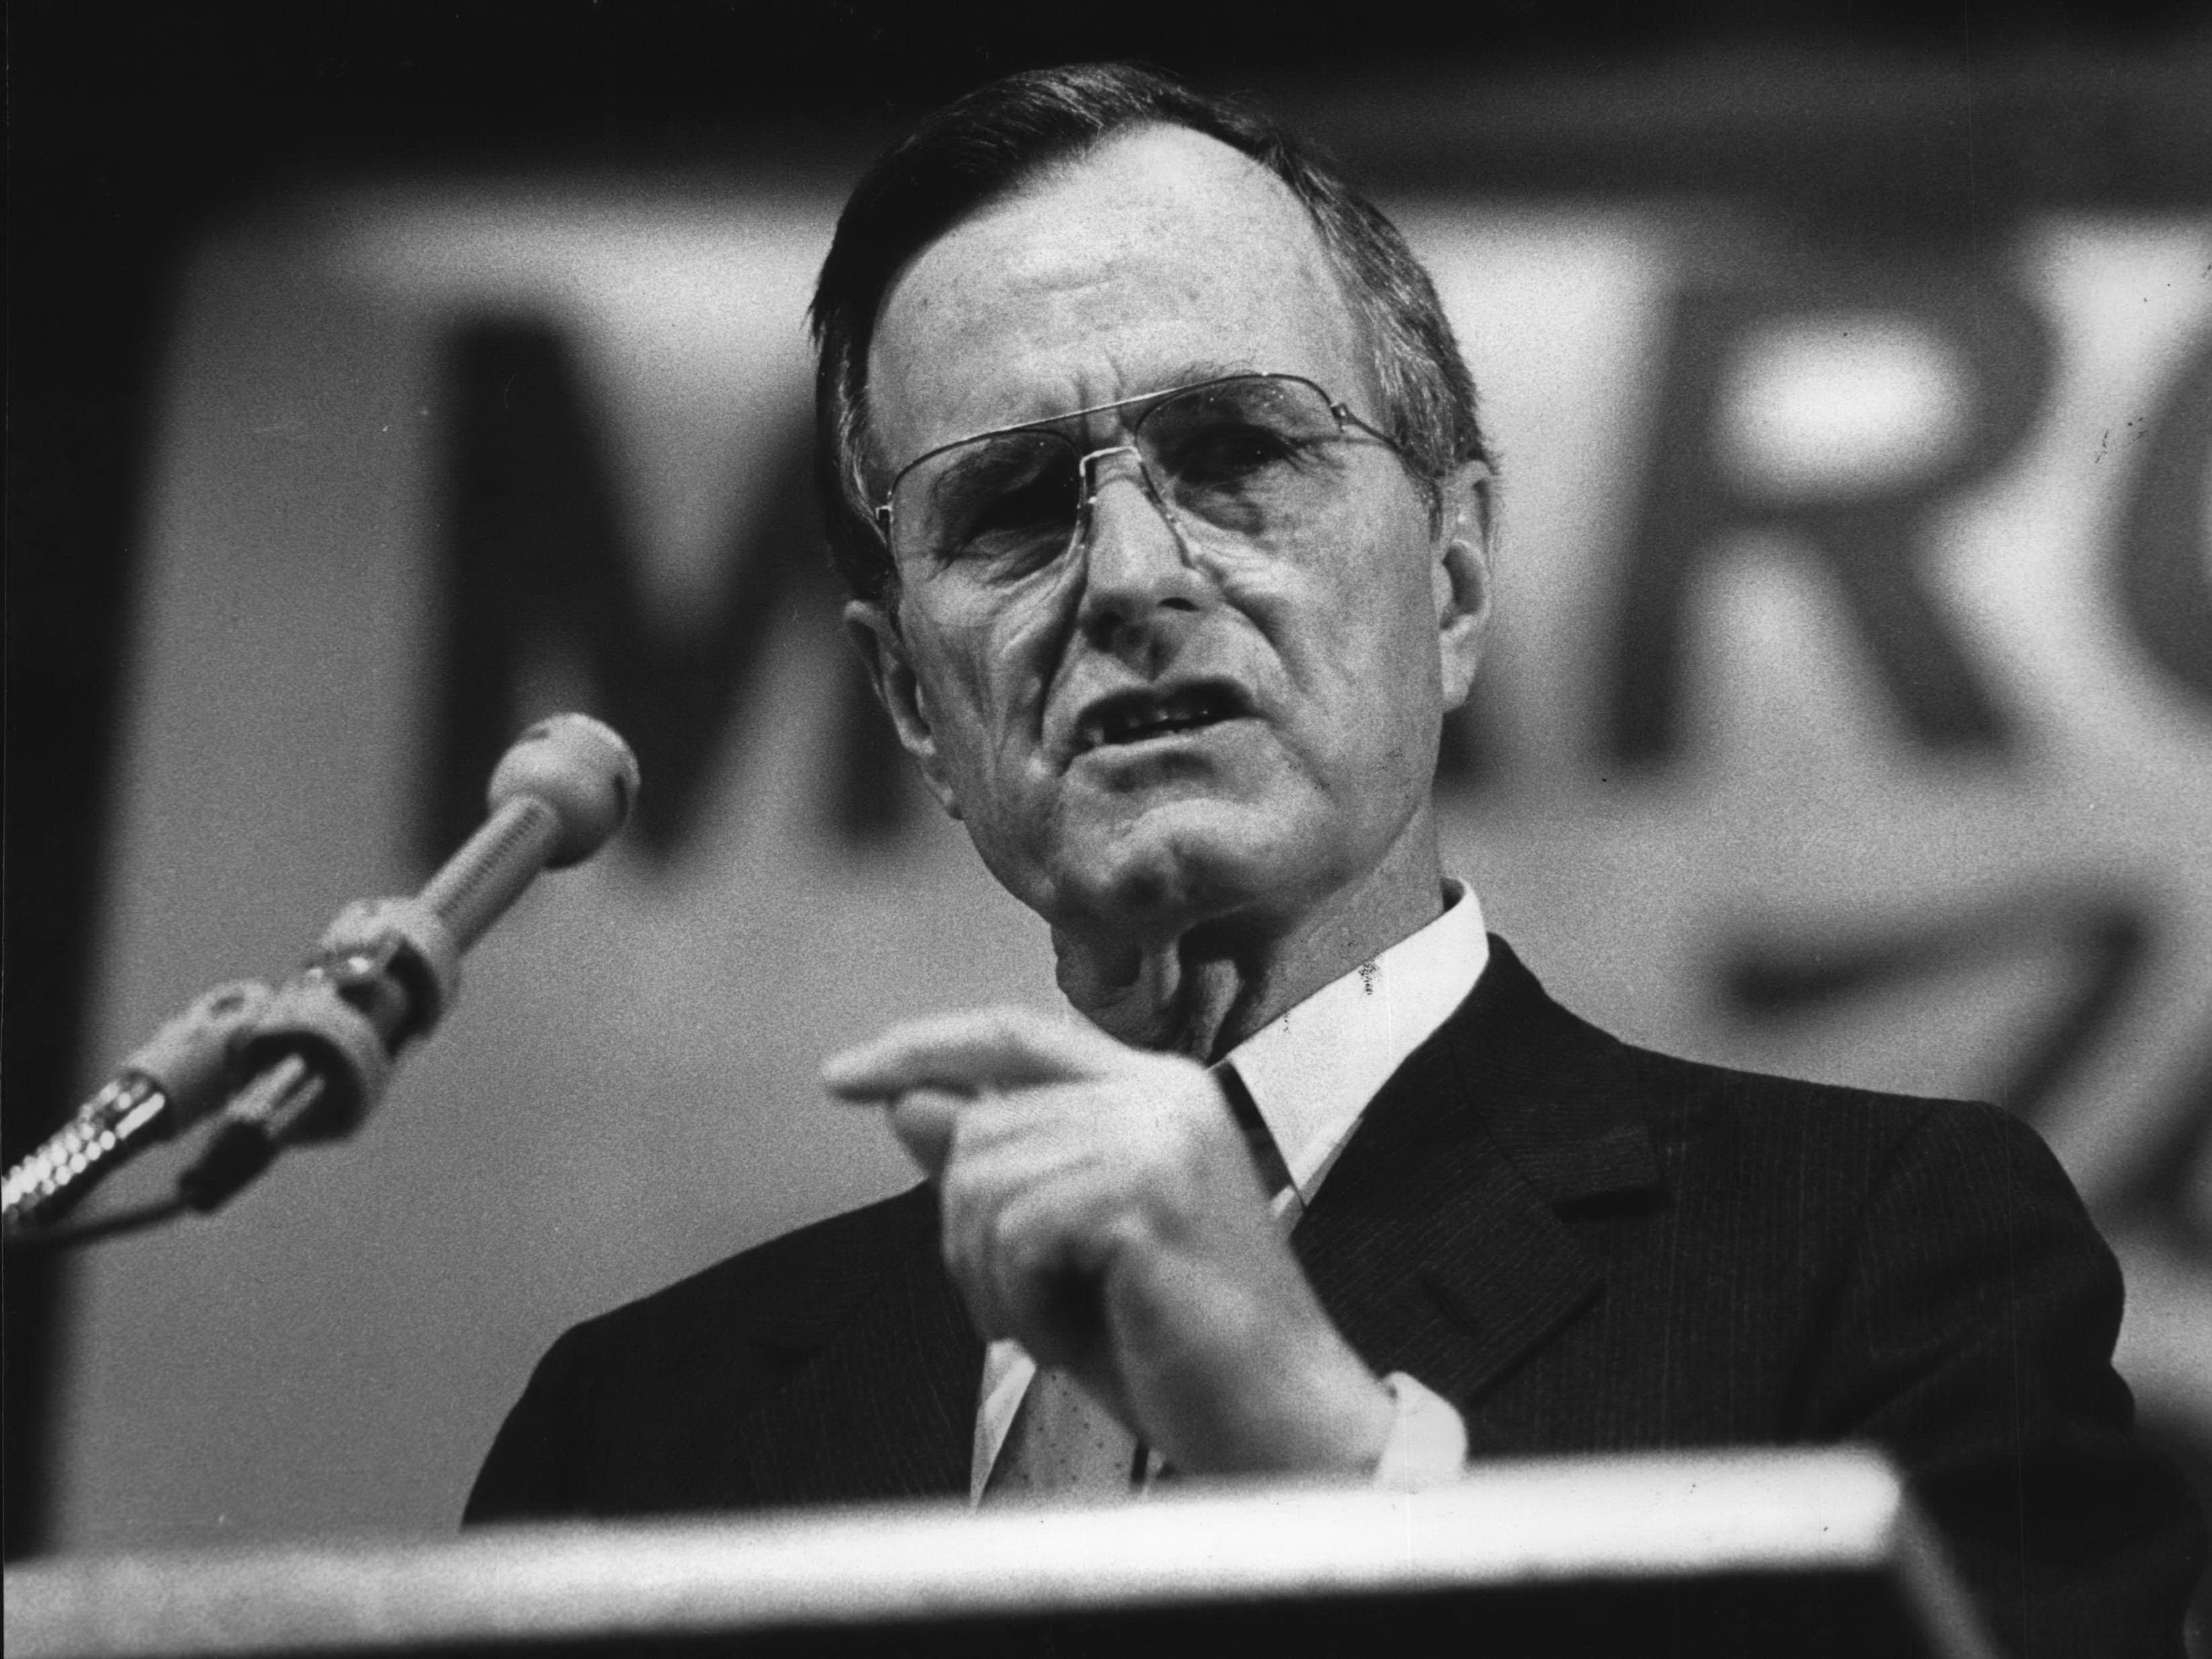 George Bush speaks to students at Marquette University High School during his 1988 presidential campaign.